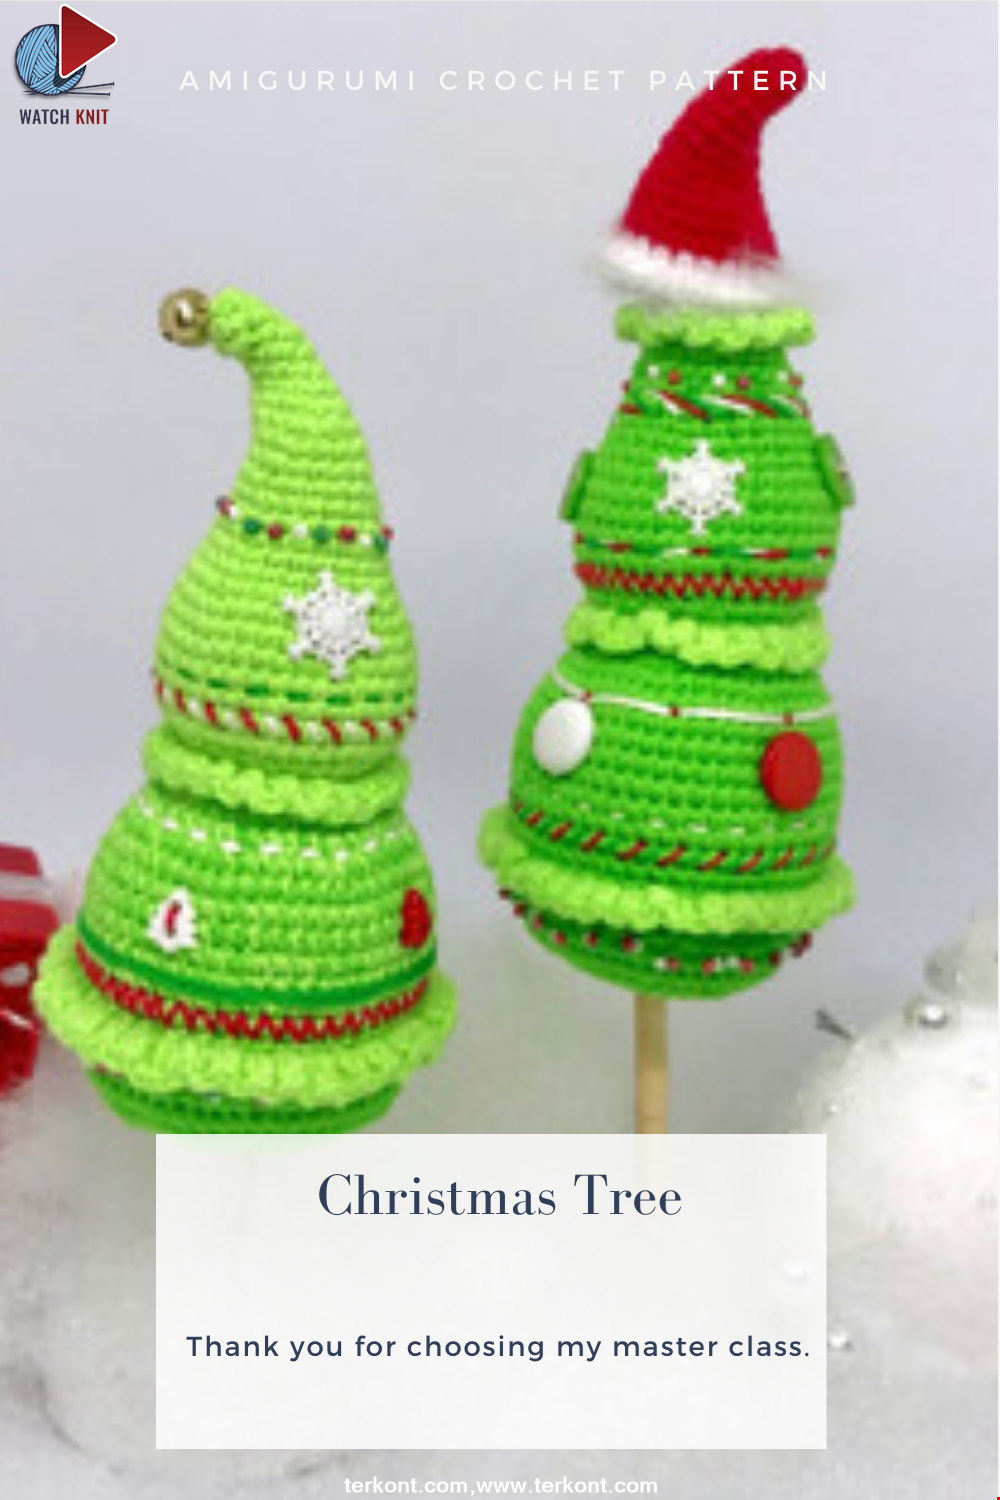 Amigurumi Christmas Tree Crochet Pattern